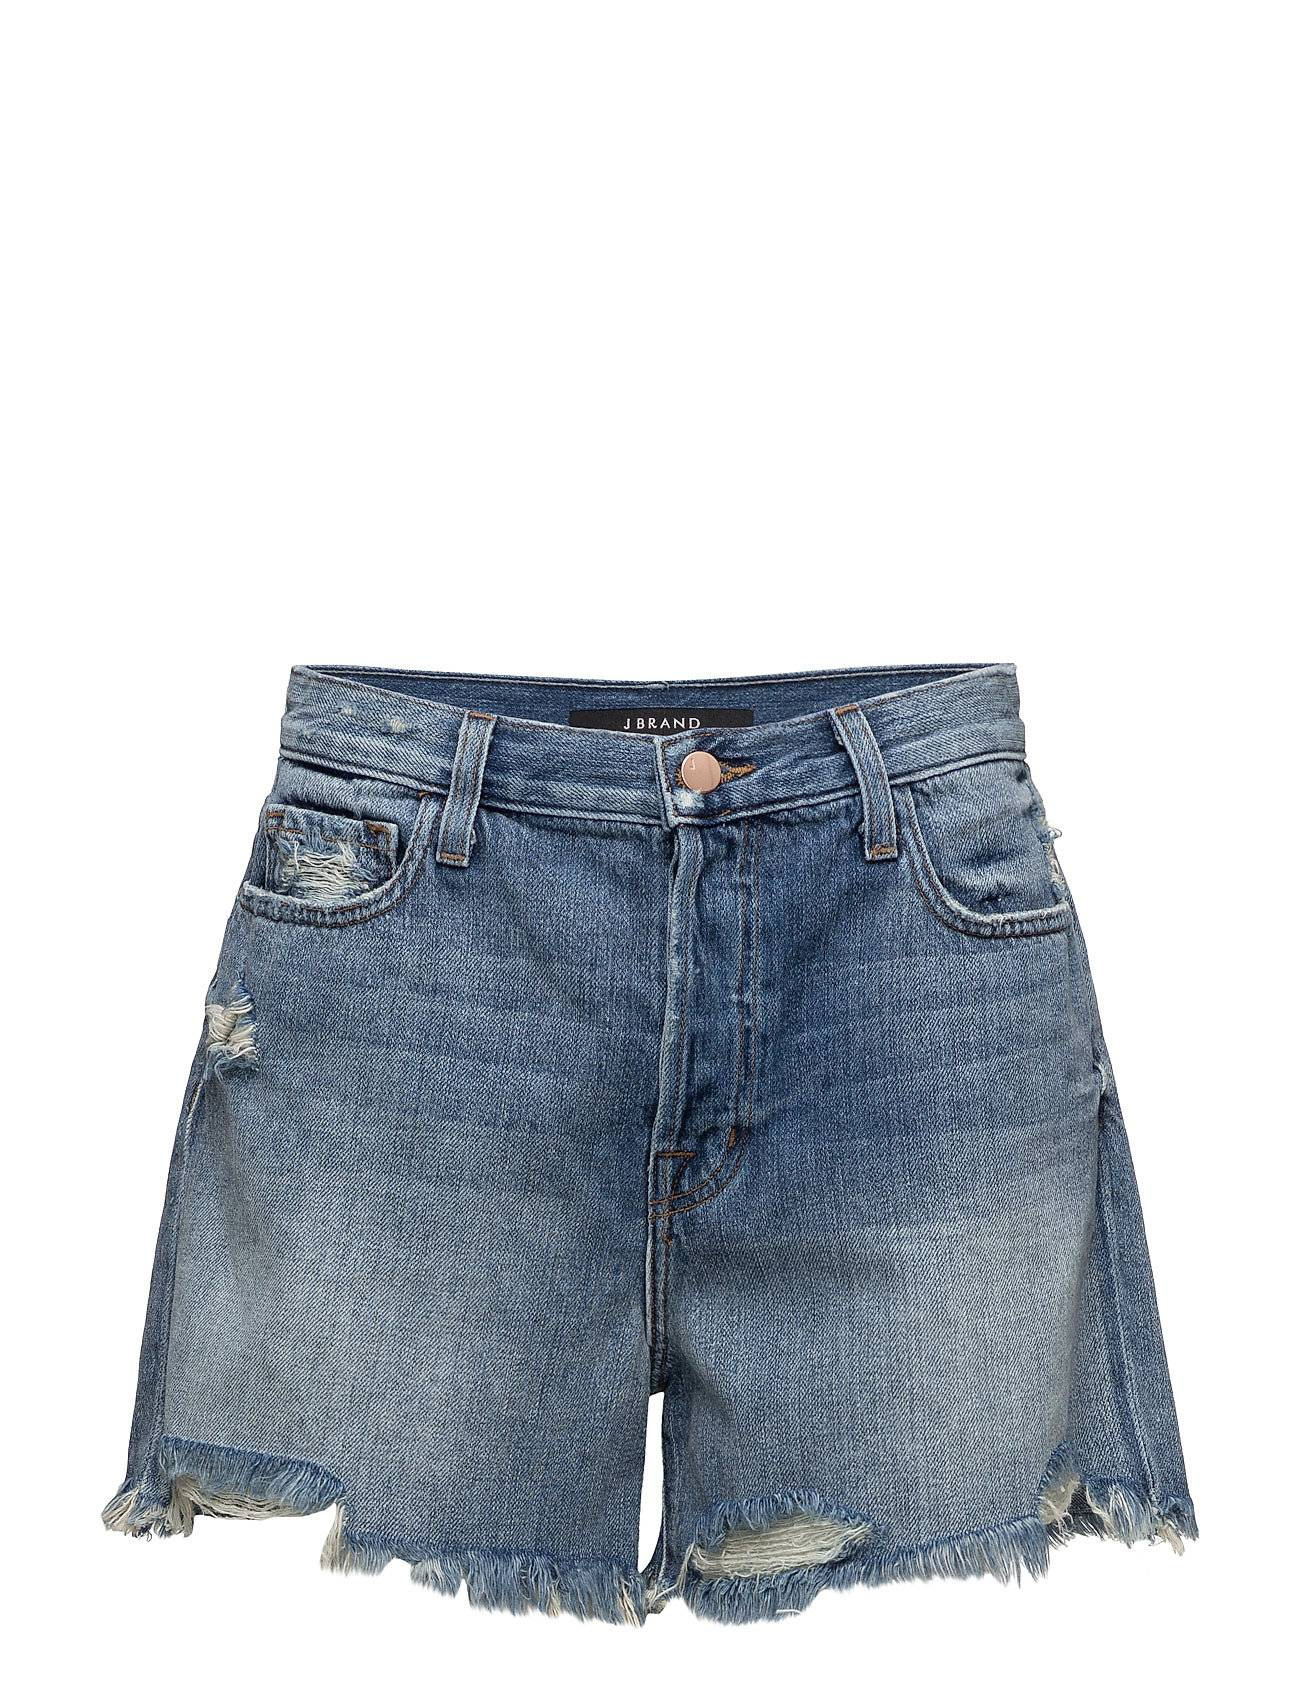 J brand I608 Ivy High Rise Short